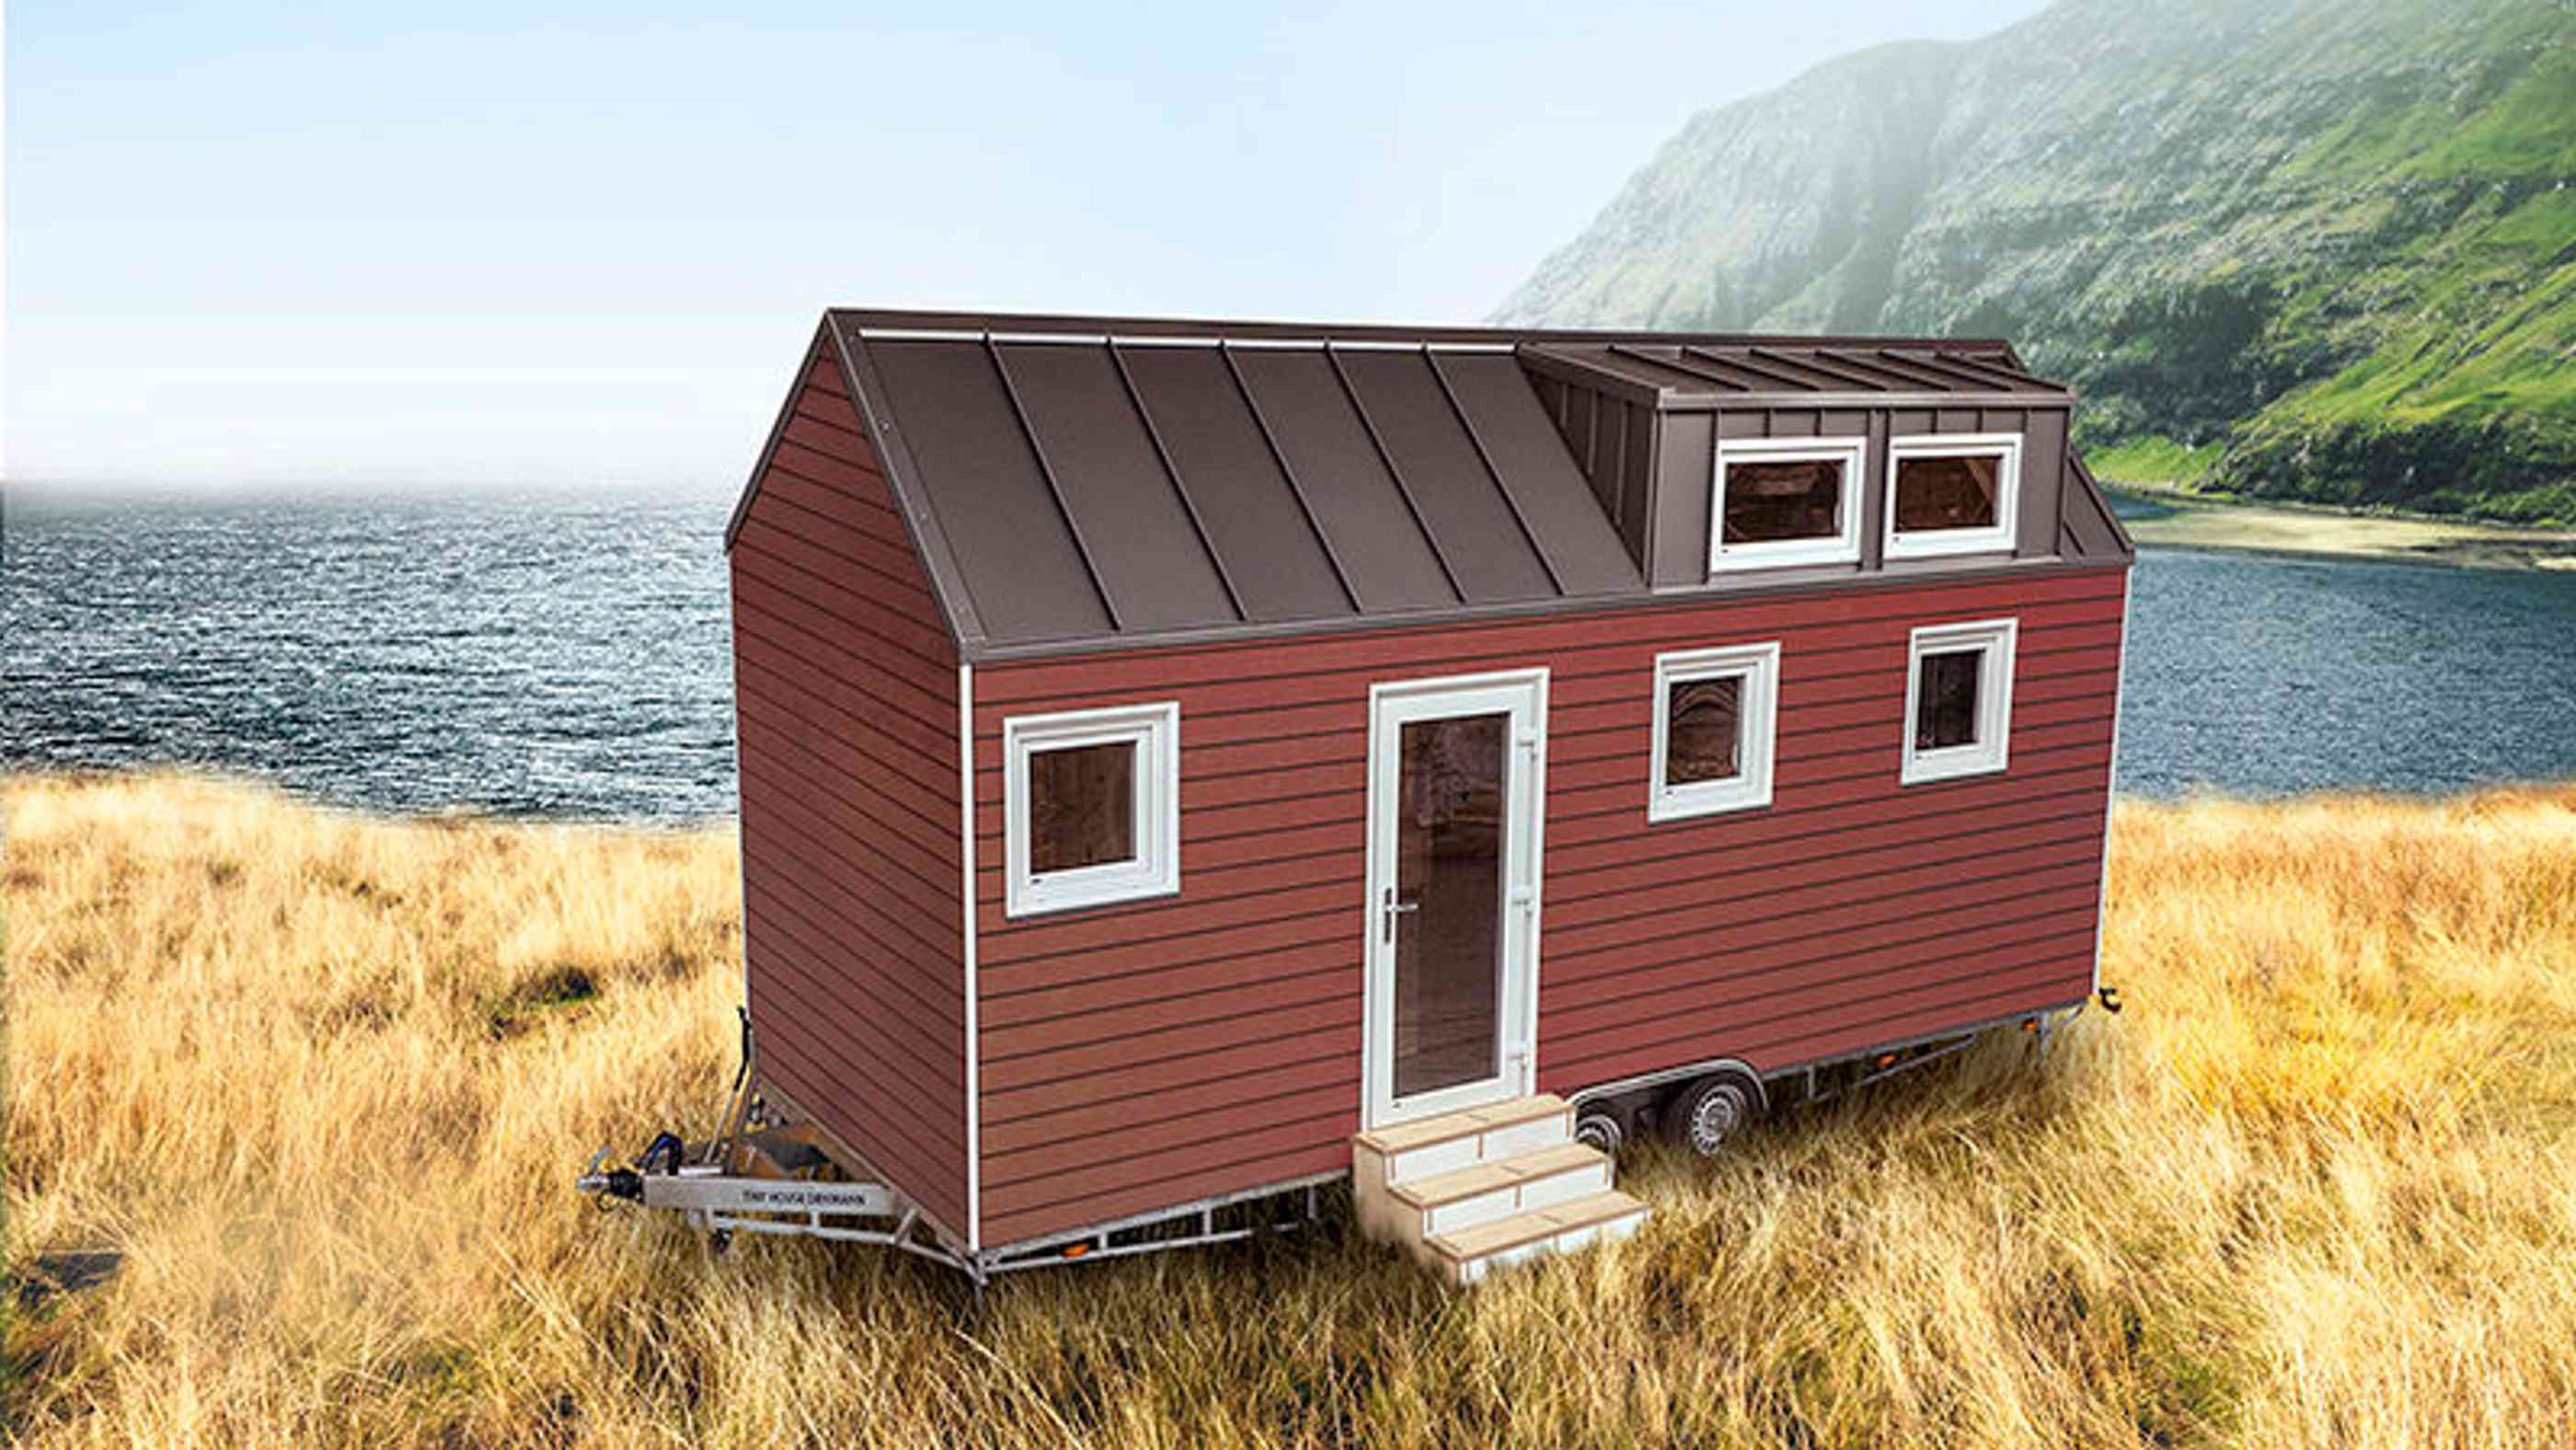 rotes Minihaus am Meer